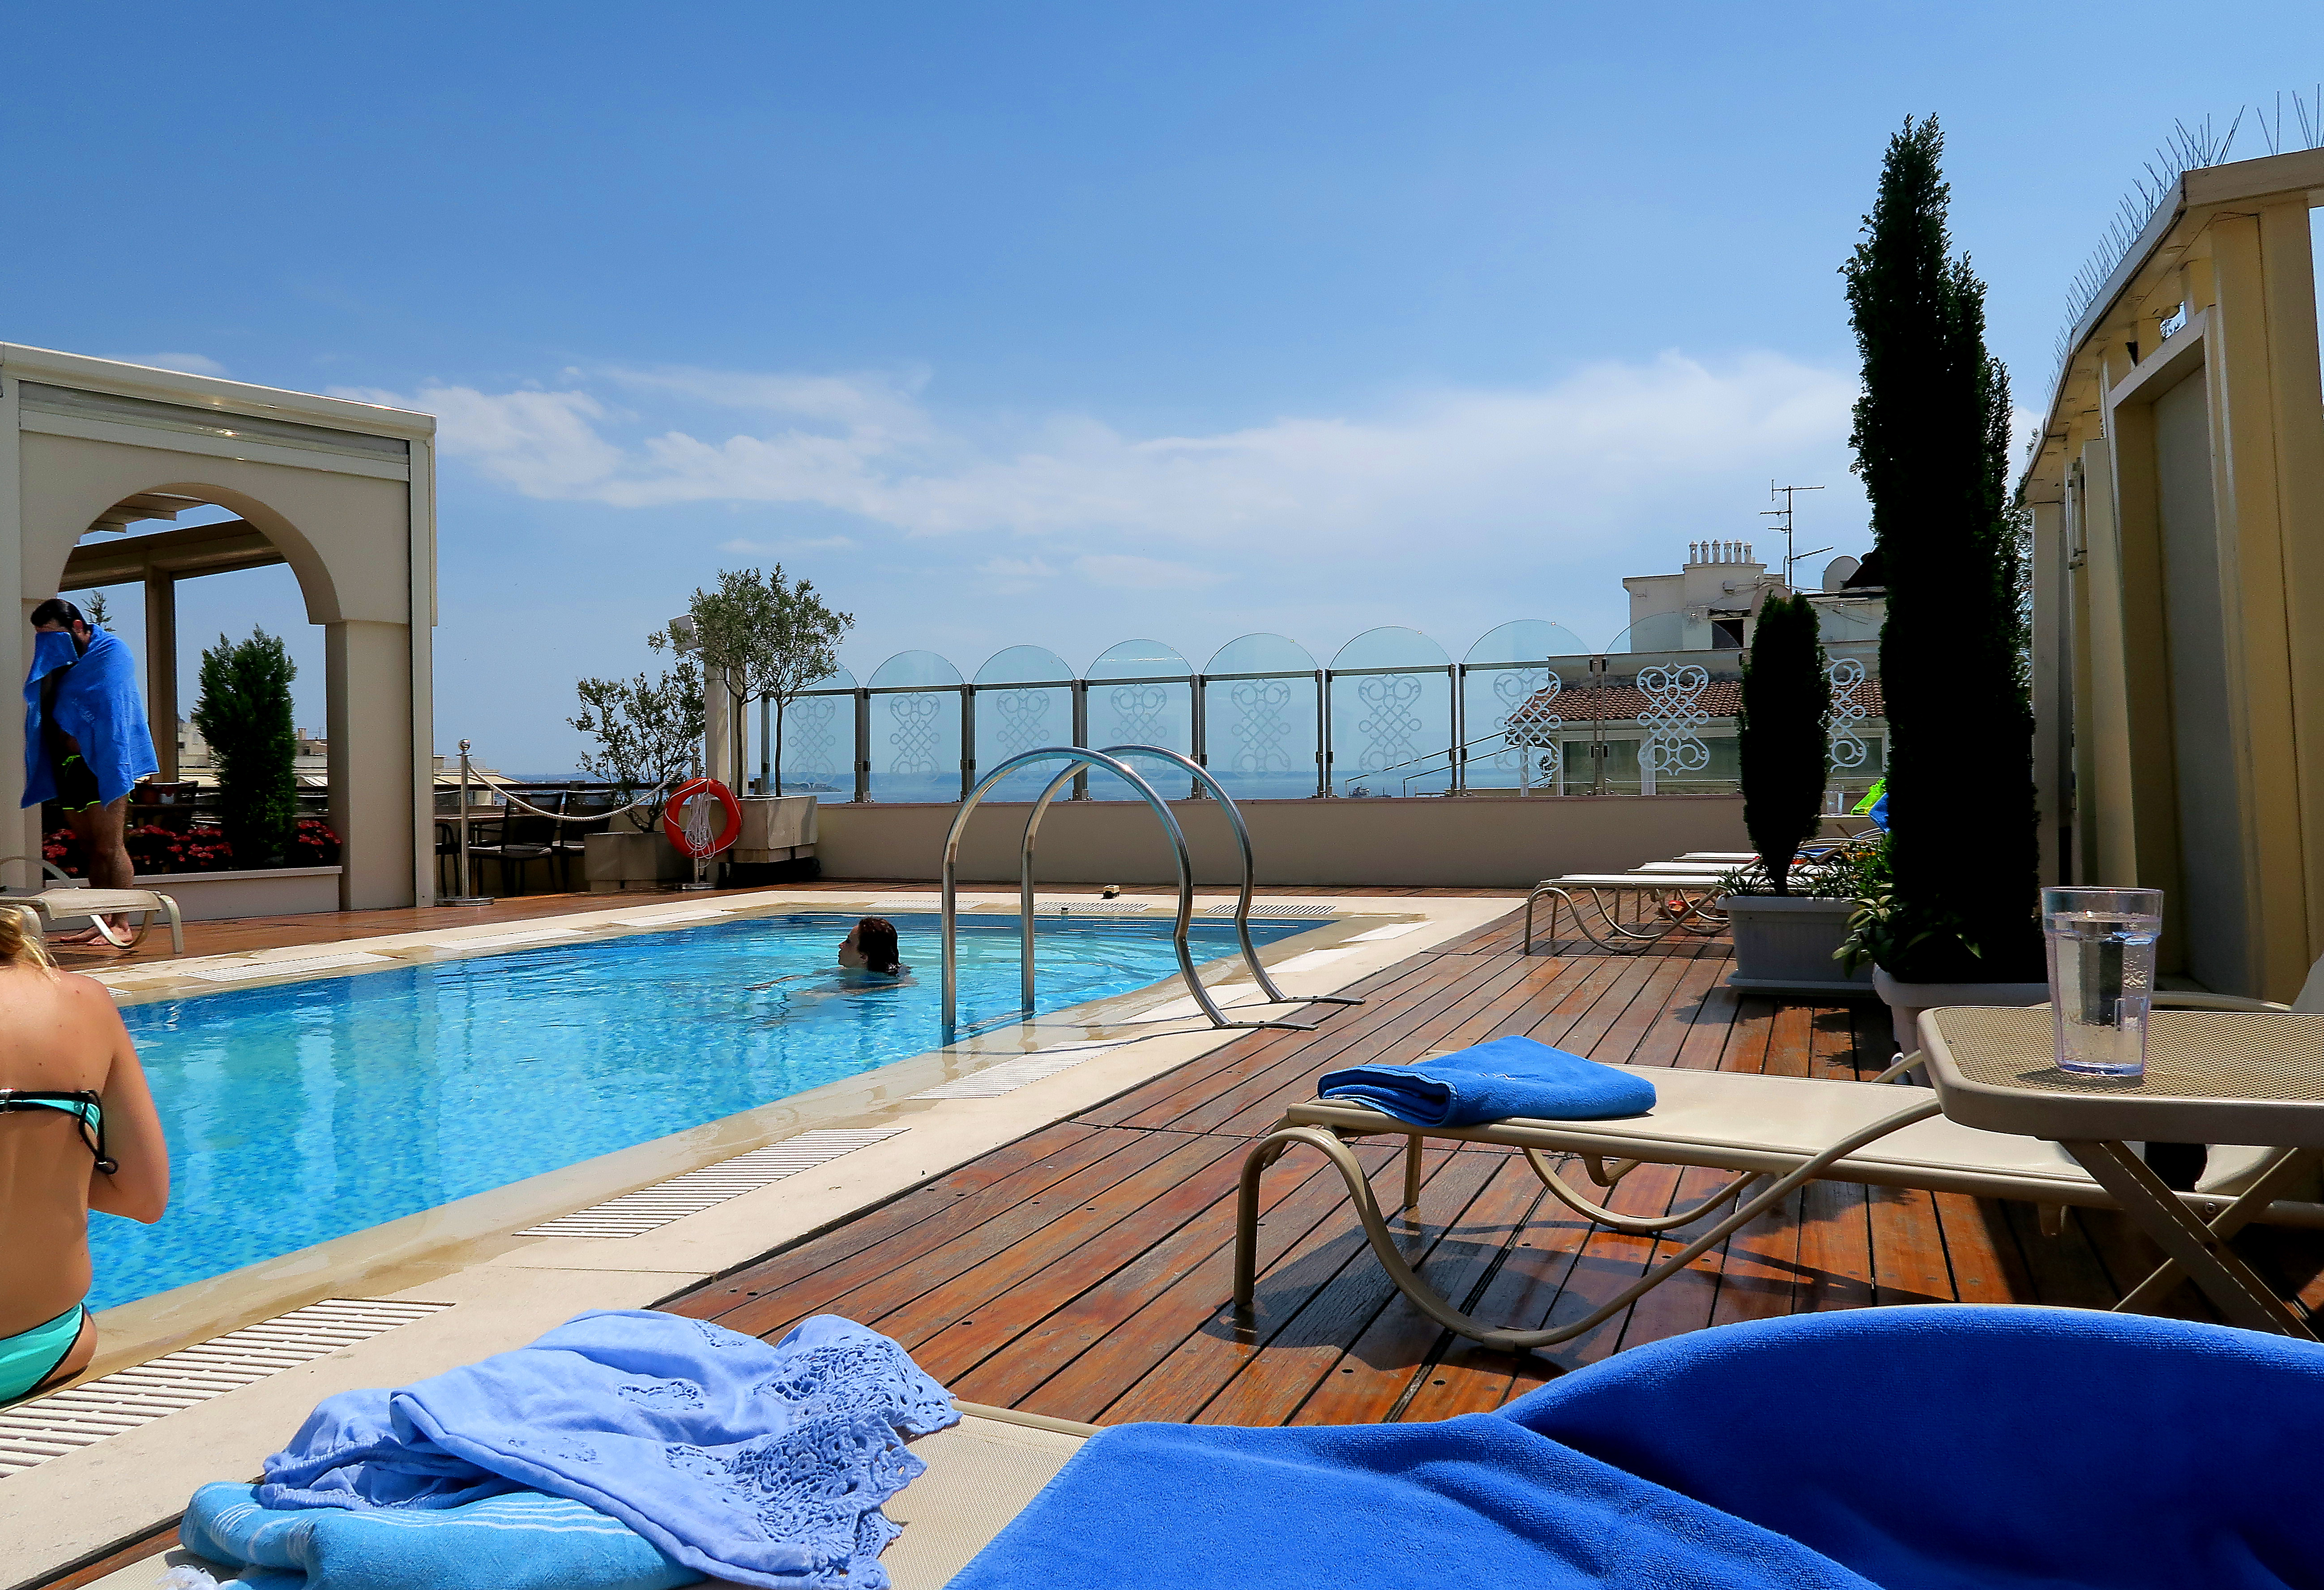 Luxury Layovers In The Centre Of City Electra Palace Hotel Thessaloniki Greece